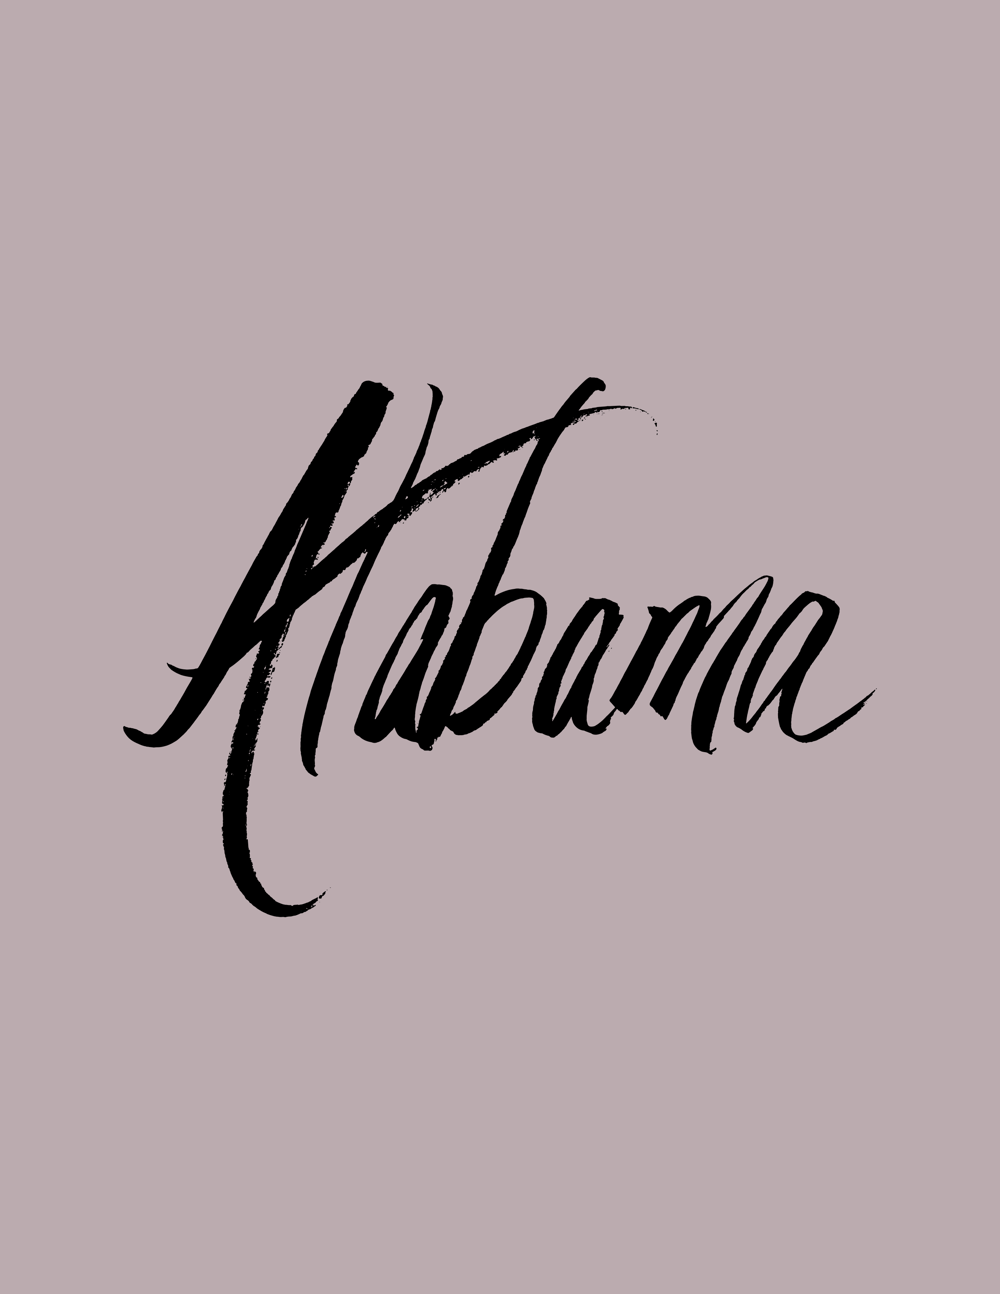 Alabama lettering - image 4 - student project